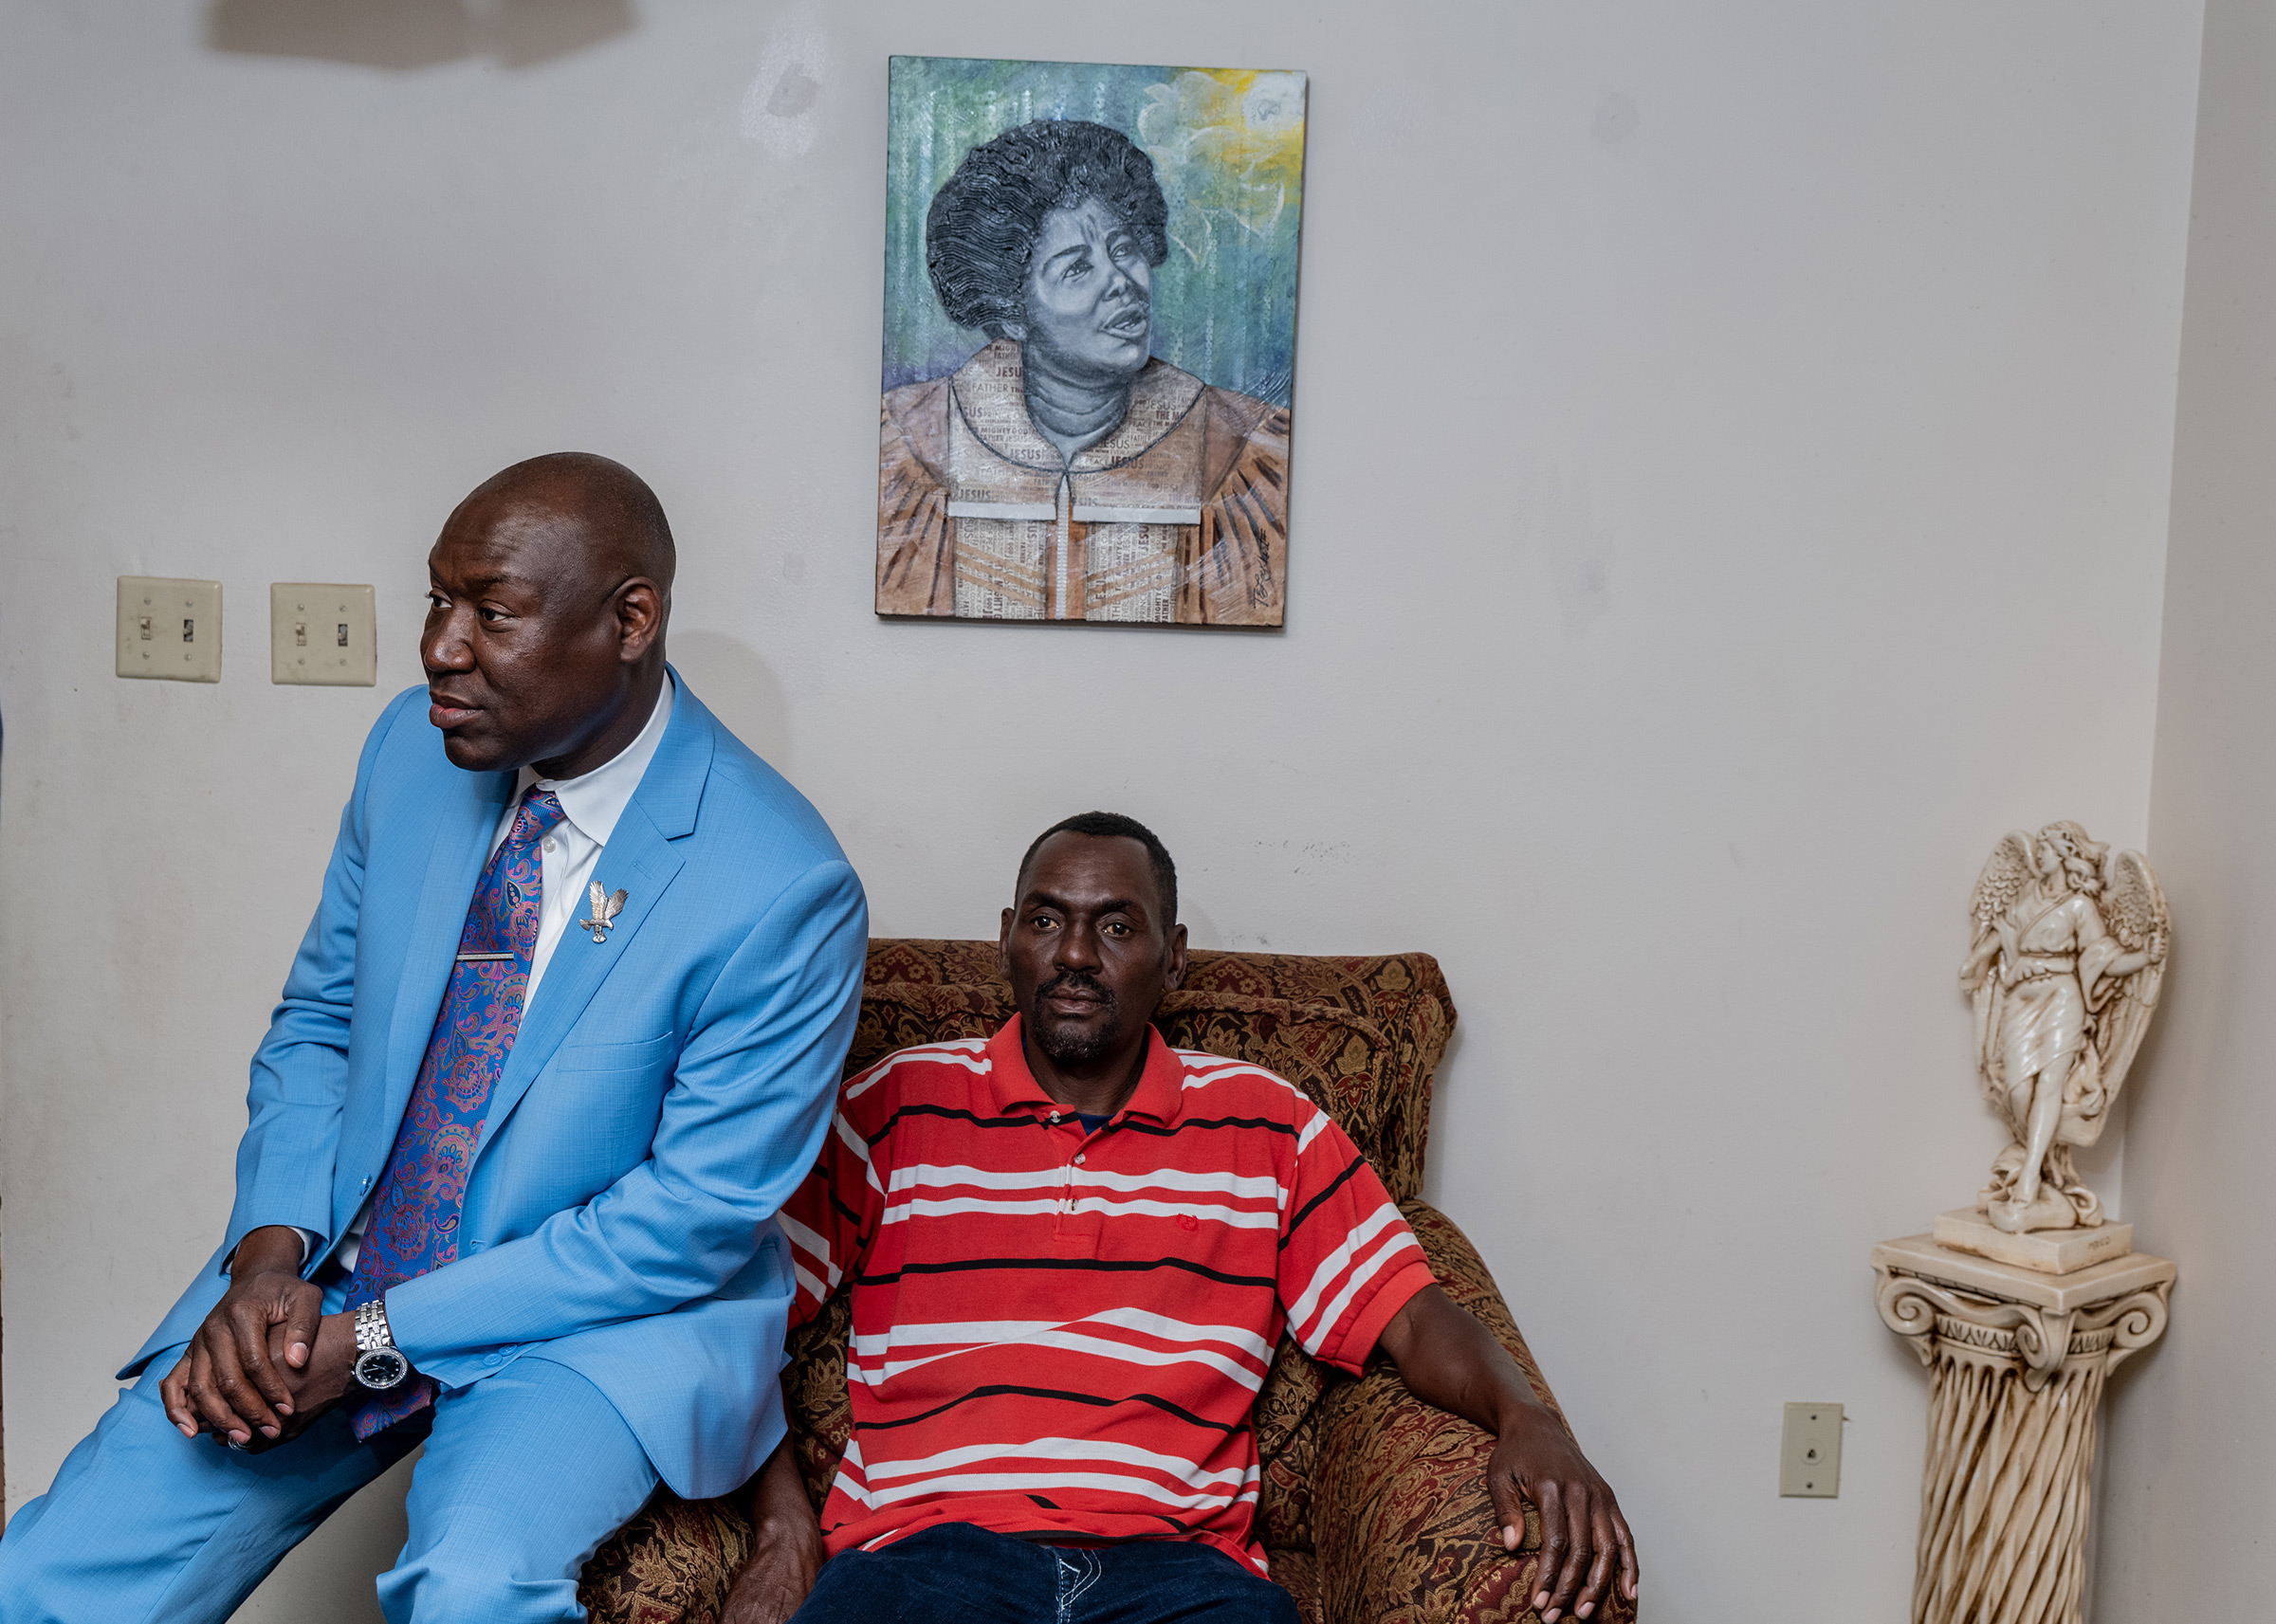 Crump sits with his Uncle Harold at his Mother's home in Tallahassee, Fla., on April 4.